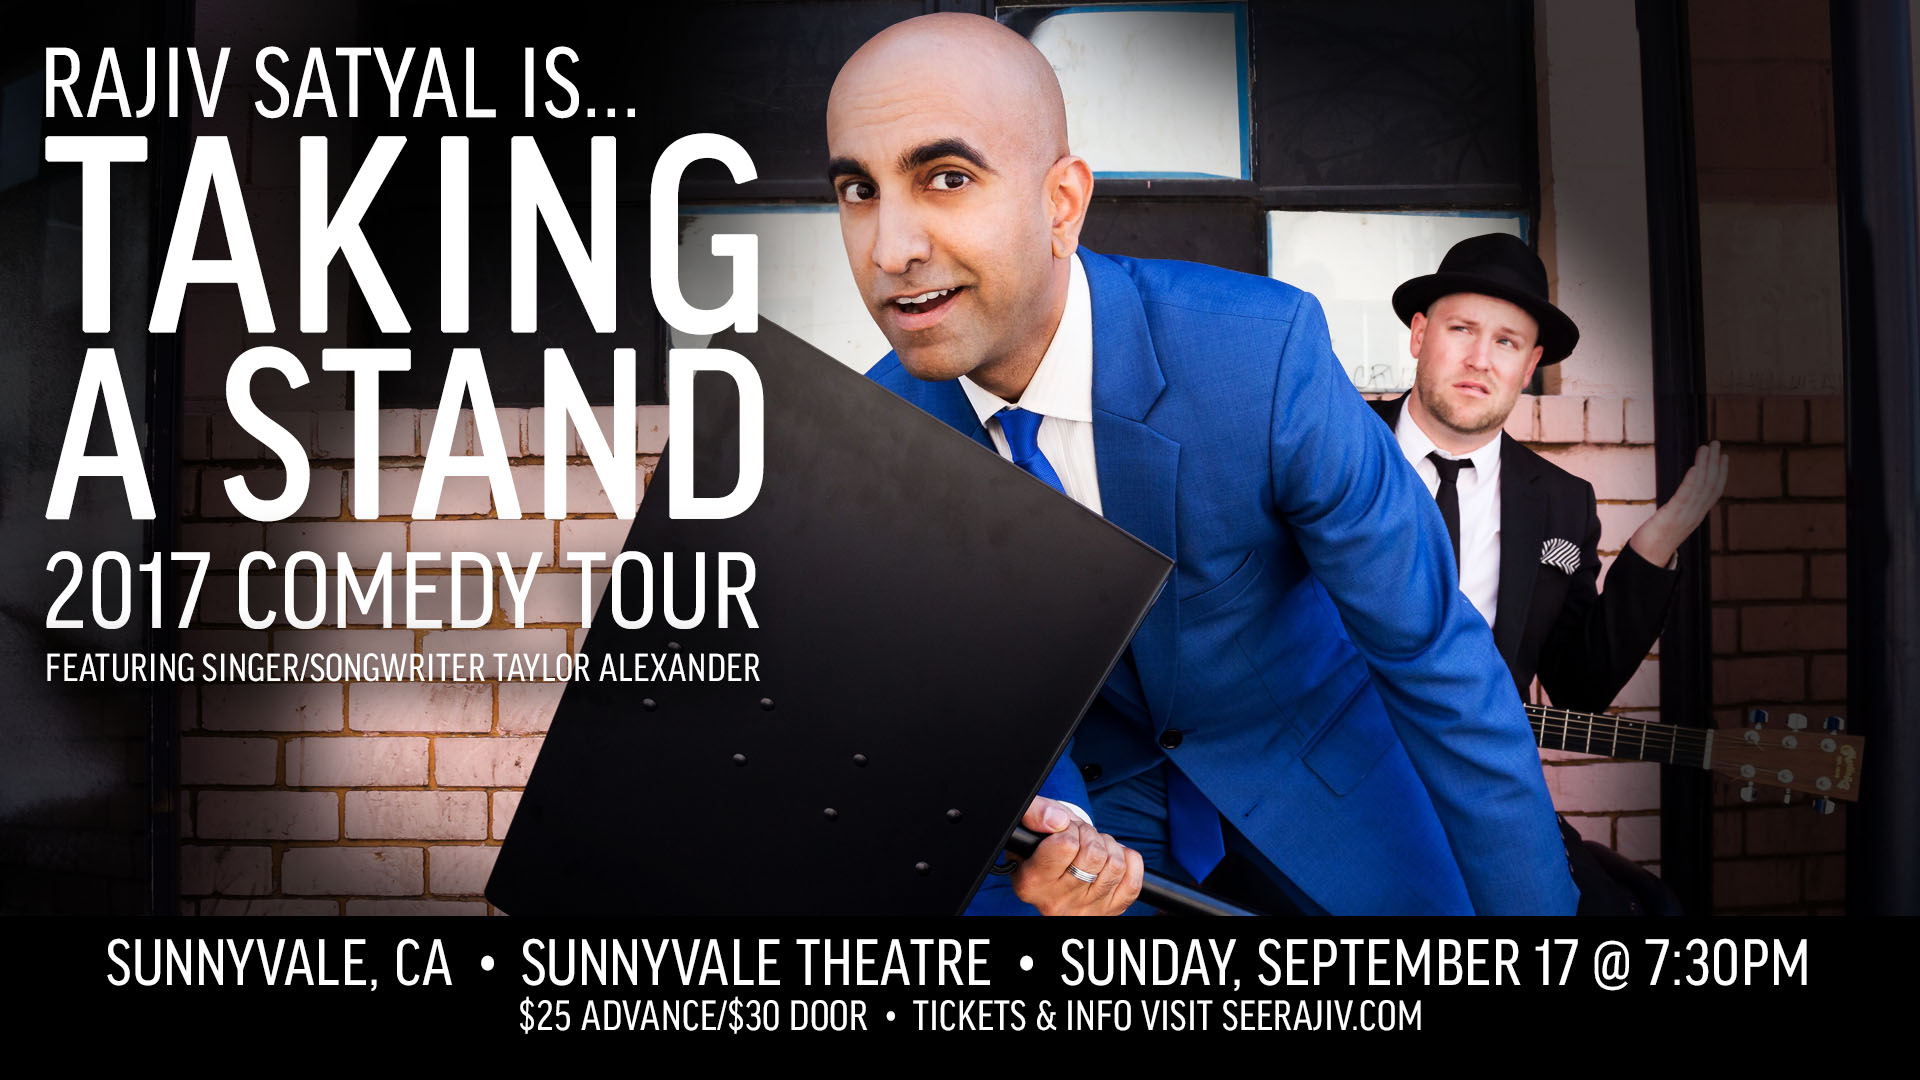 Rajiv Satyal's Taking a Stand Comedy Tour - Sunnyvale